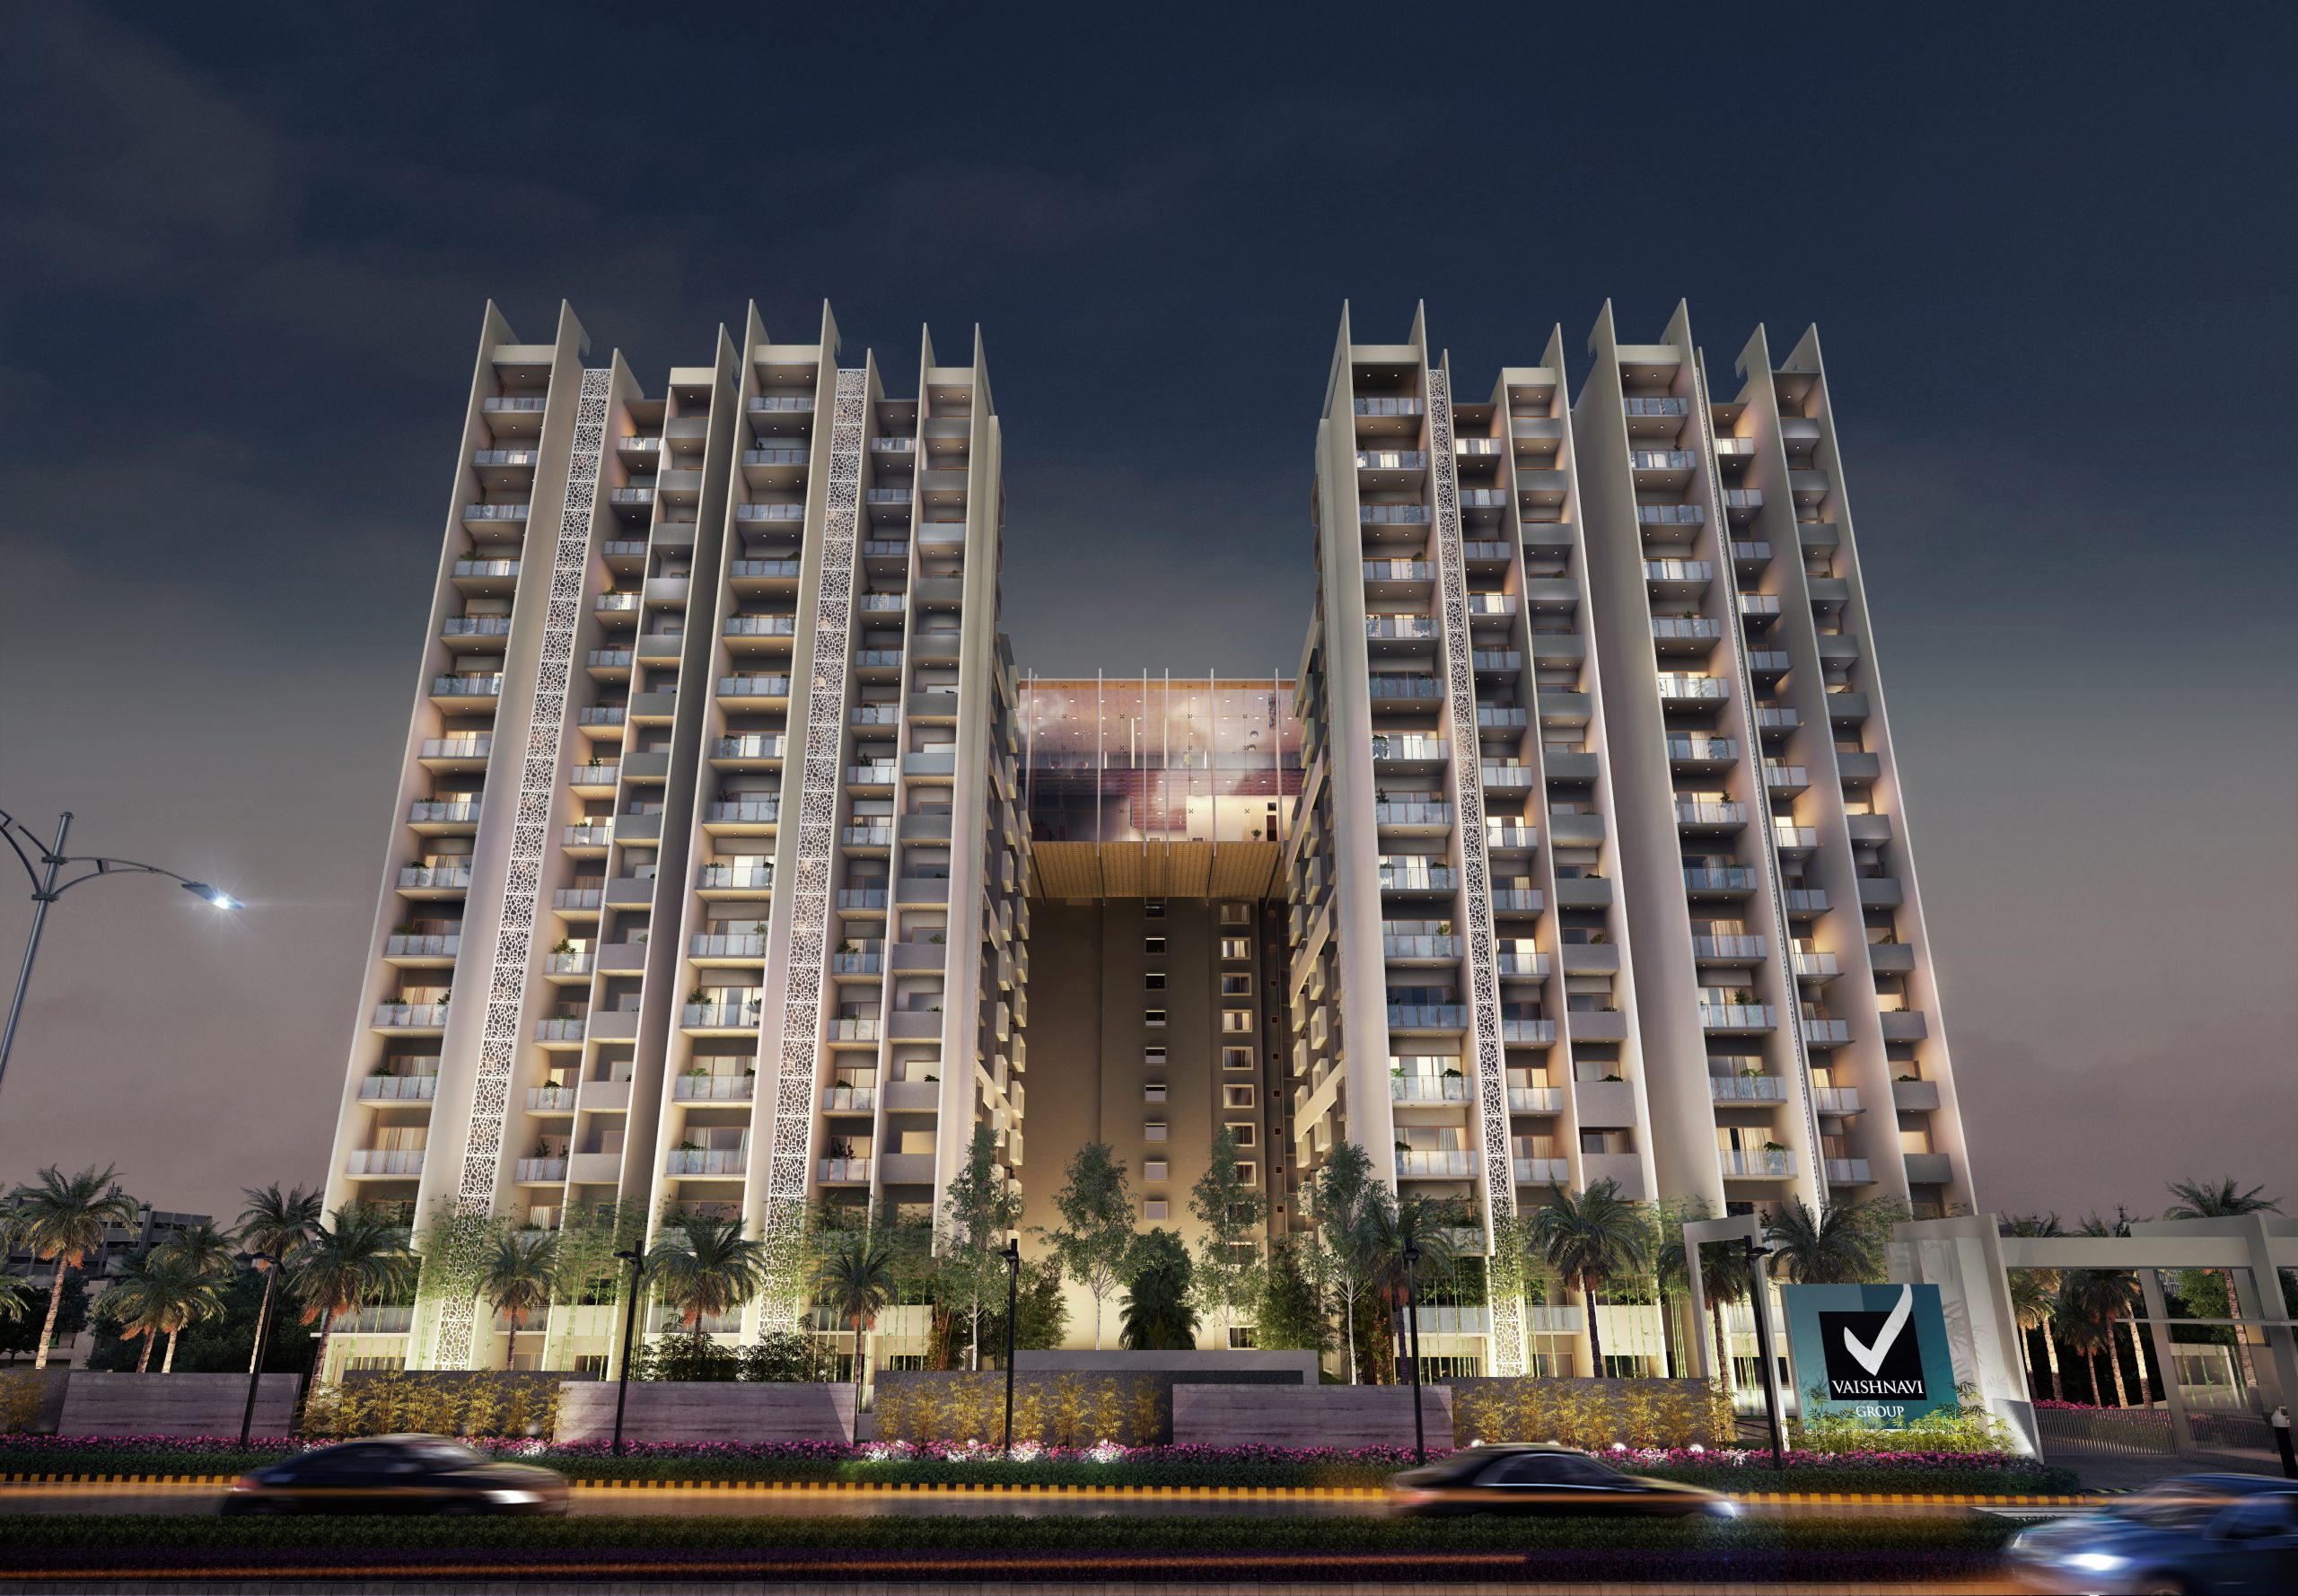 Vaishnavi Oasis   Top Luxurious 2BHK and 3BHK flats are for sale in JP NAGAR 9TH PHASE, bengaluru